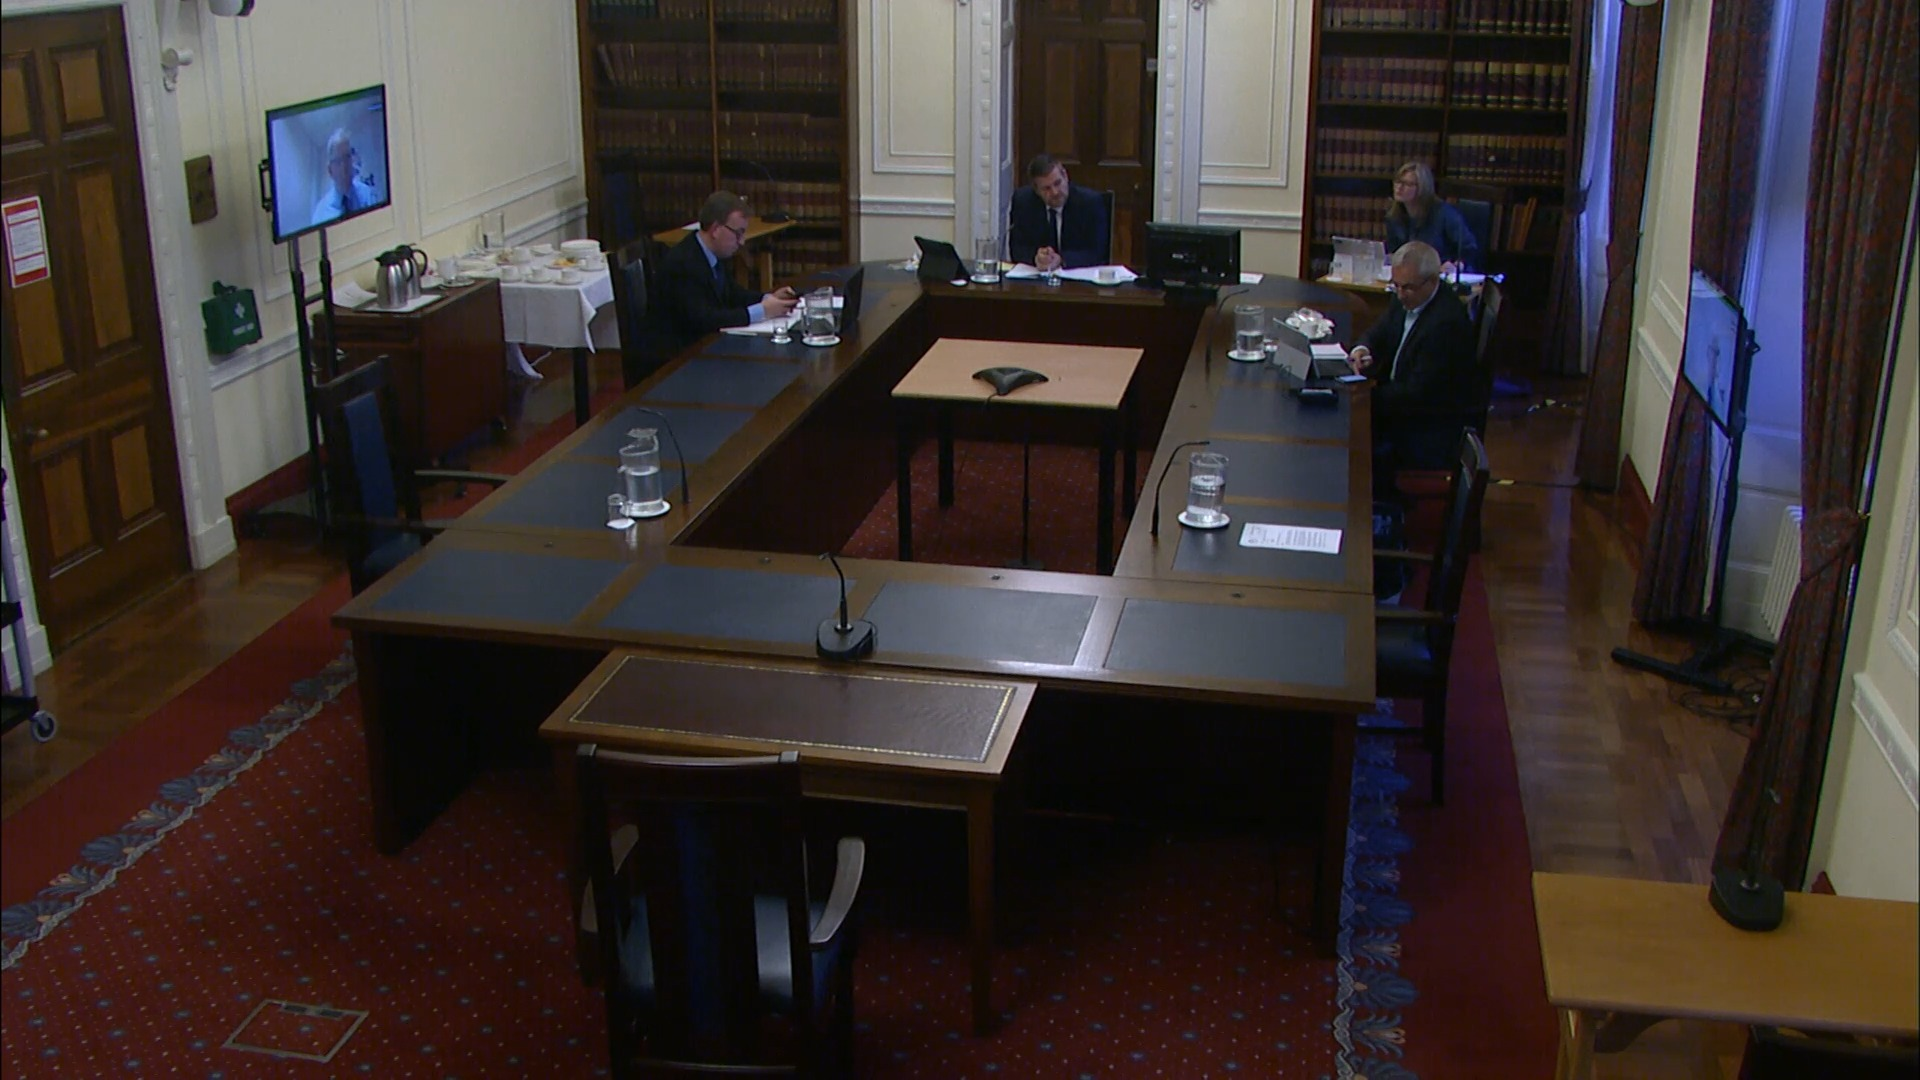 Executive Office Committee Meeting - Wednesday 14th October 2020